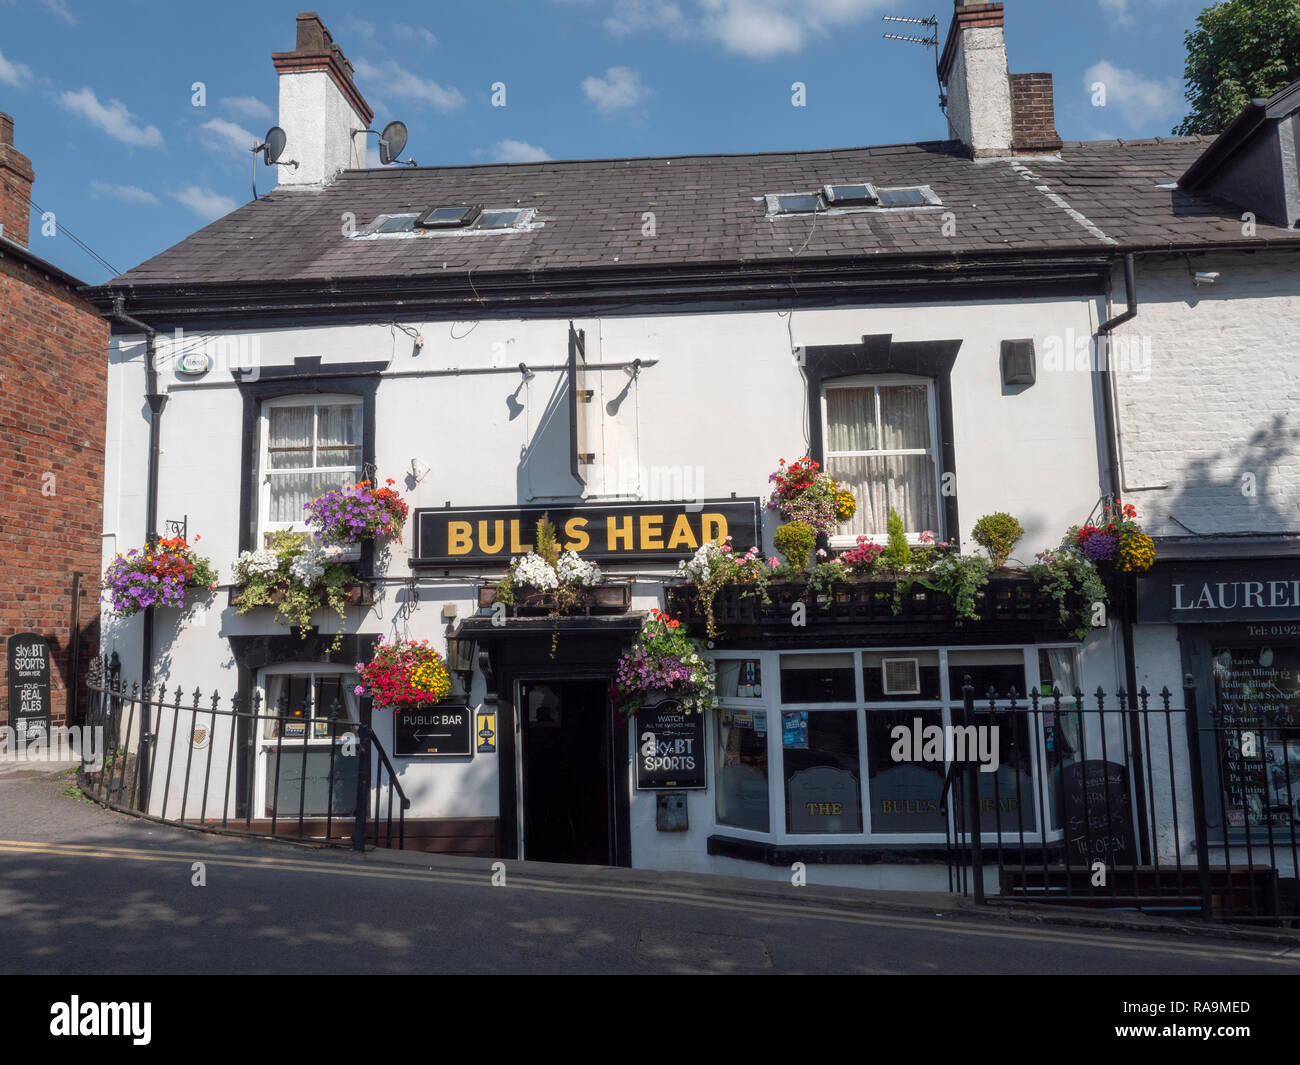 The Bulls Head public house, The Cross, Lymm, Cheshire, England, UK - Stock Image